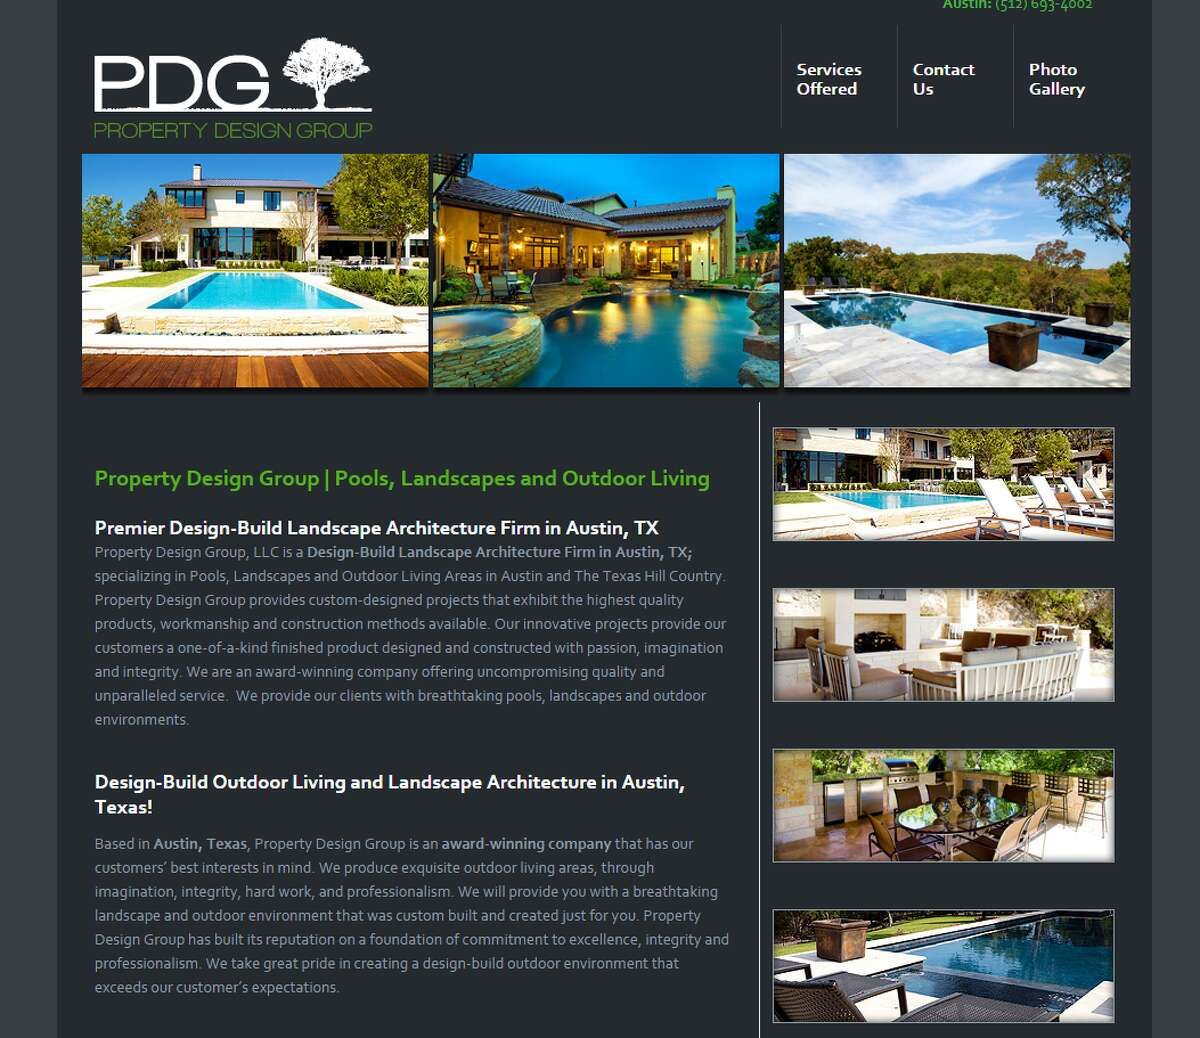 29. Property Design Group, LLC Industry: Construction Growth-rate: 59.645 percent Location: Austin, Texas